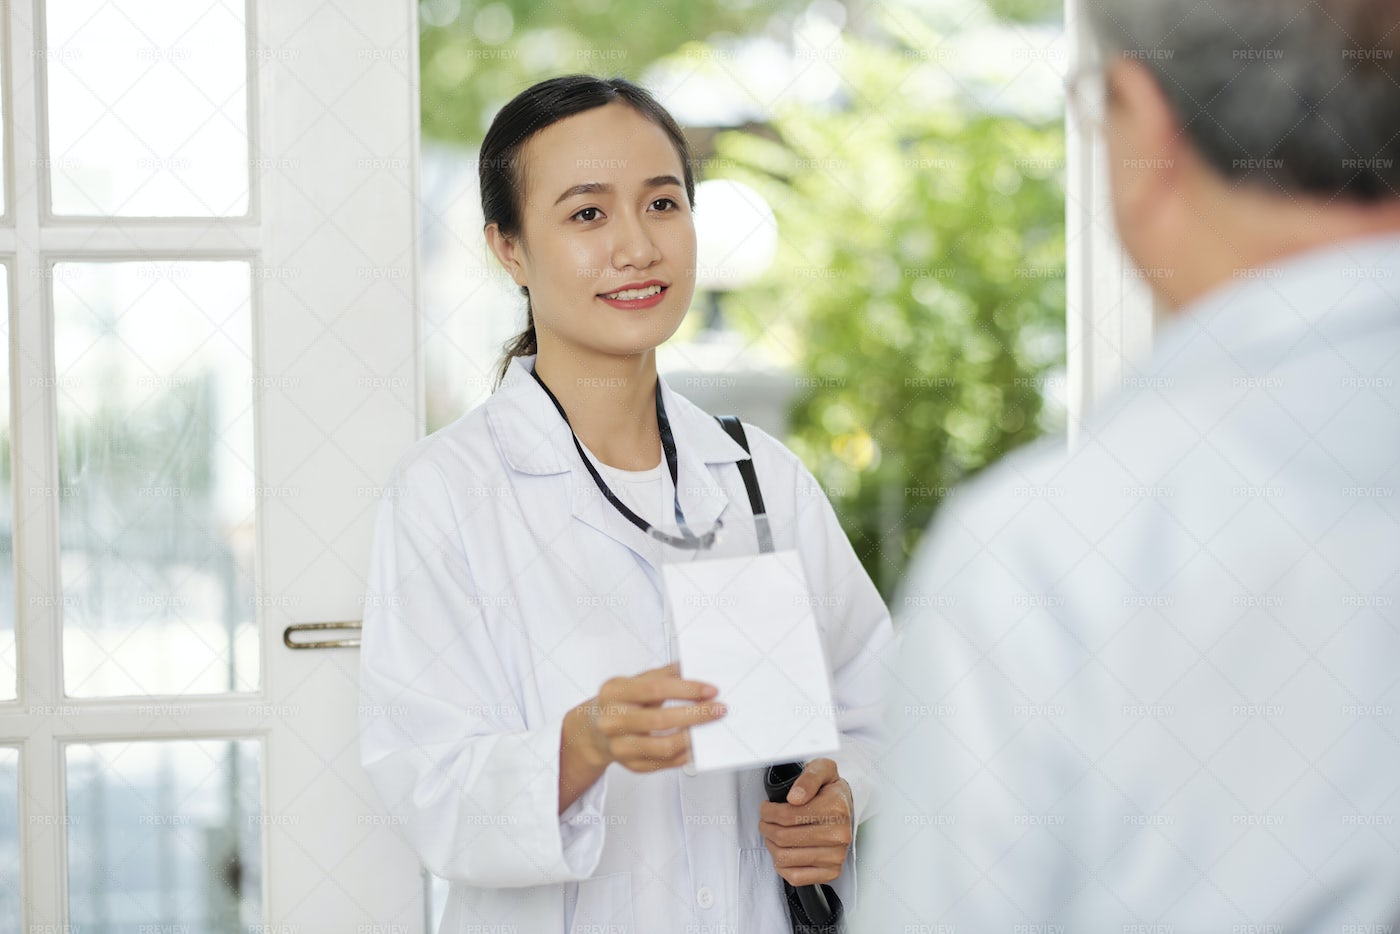 Visit Of The Doctor To Home: Stock Photos